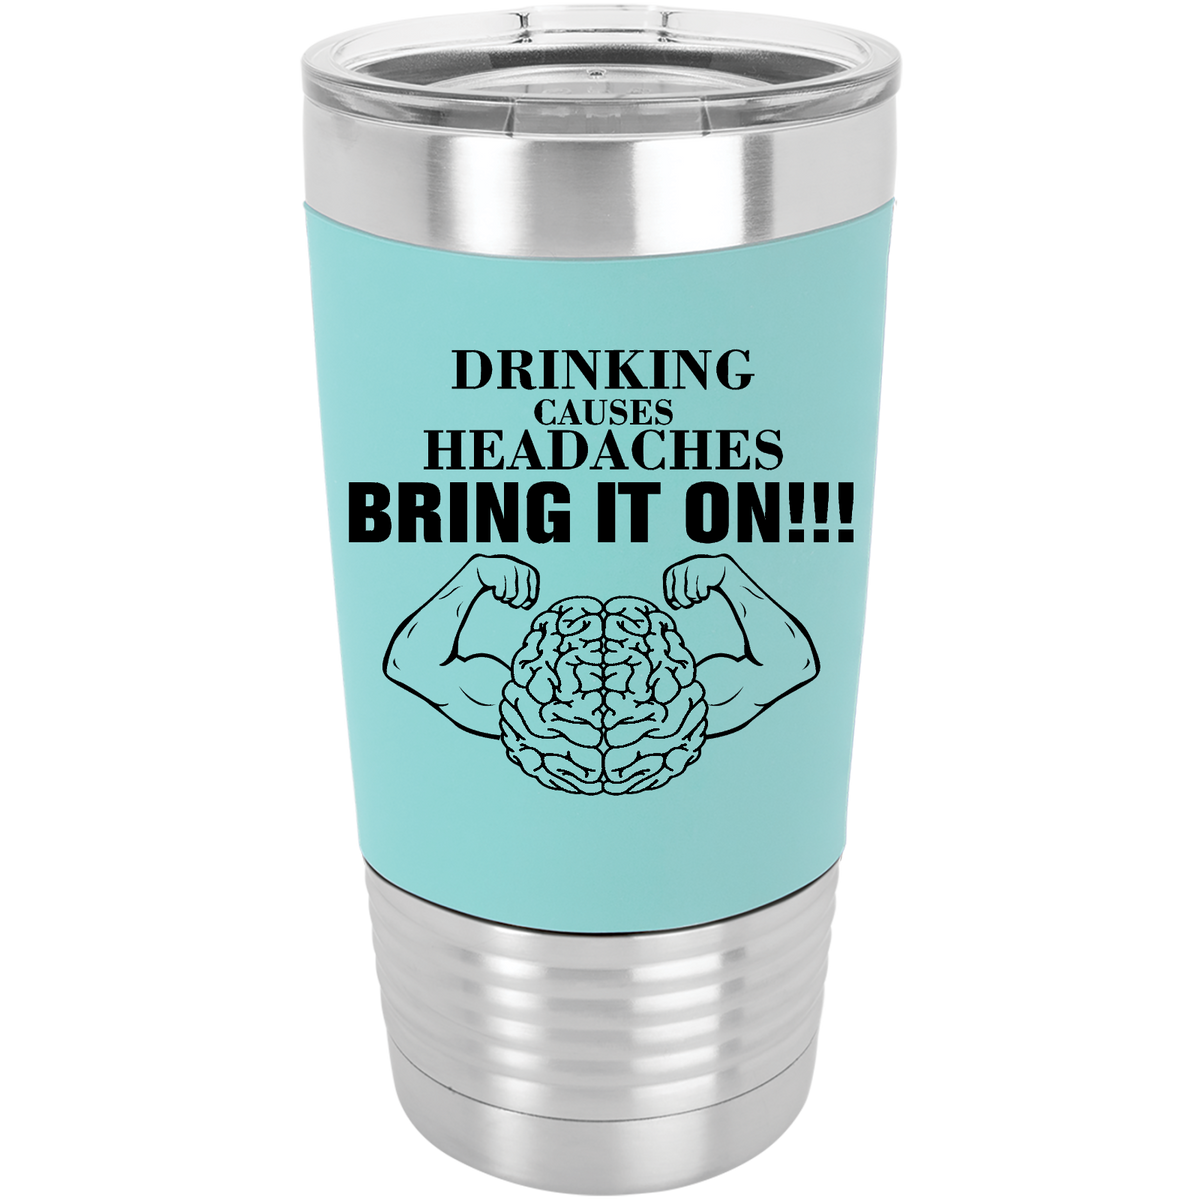 Drinking causes headaches, bring it on!!! - 20oz. Silicone Grip Tumber with Clear Lid